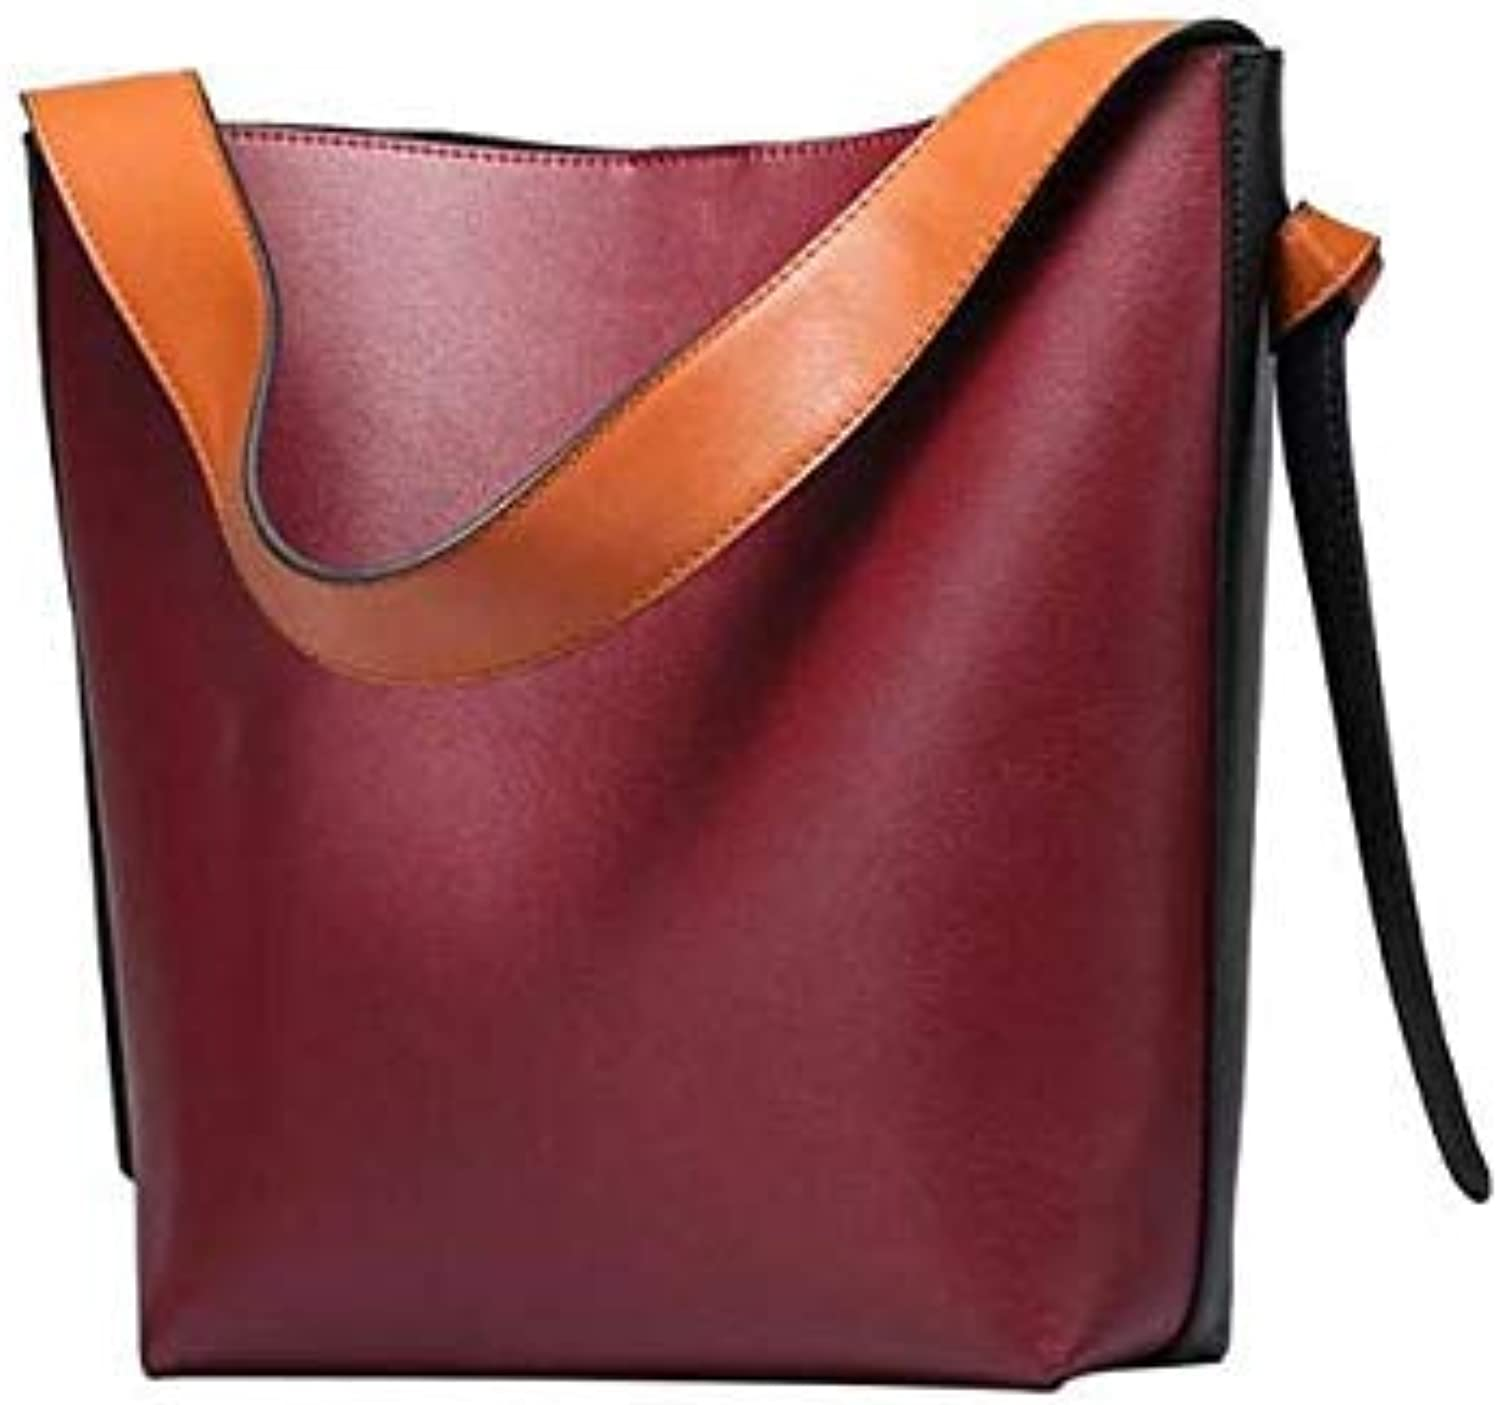 Foxtail Lily Luxury Quality Bucket Handbag Large Capacity Ladies Leather Shopping Bag Famous Designer Women Shoulder Bags Red Wine 26 x 10 x 32 cm